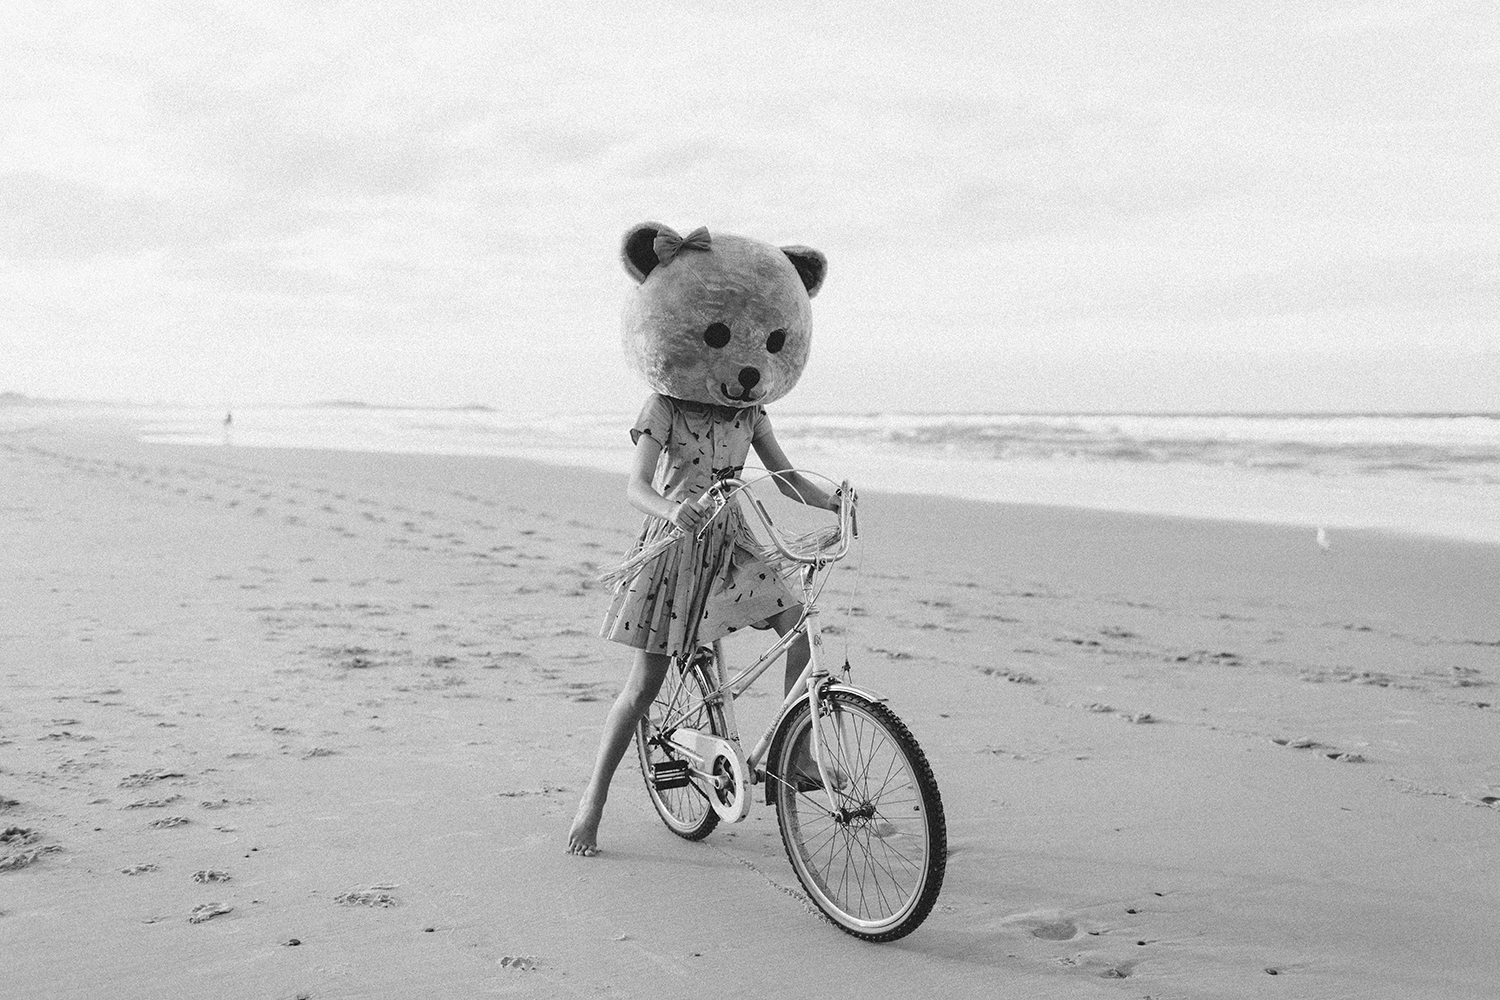 bike-and-bear-bw104.jpg